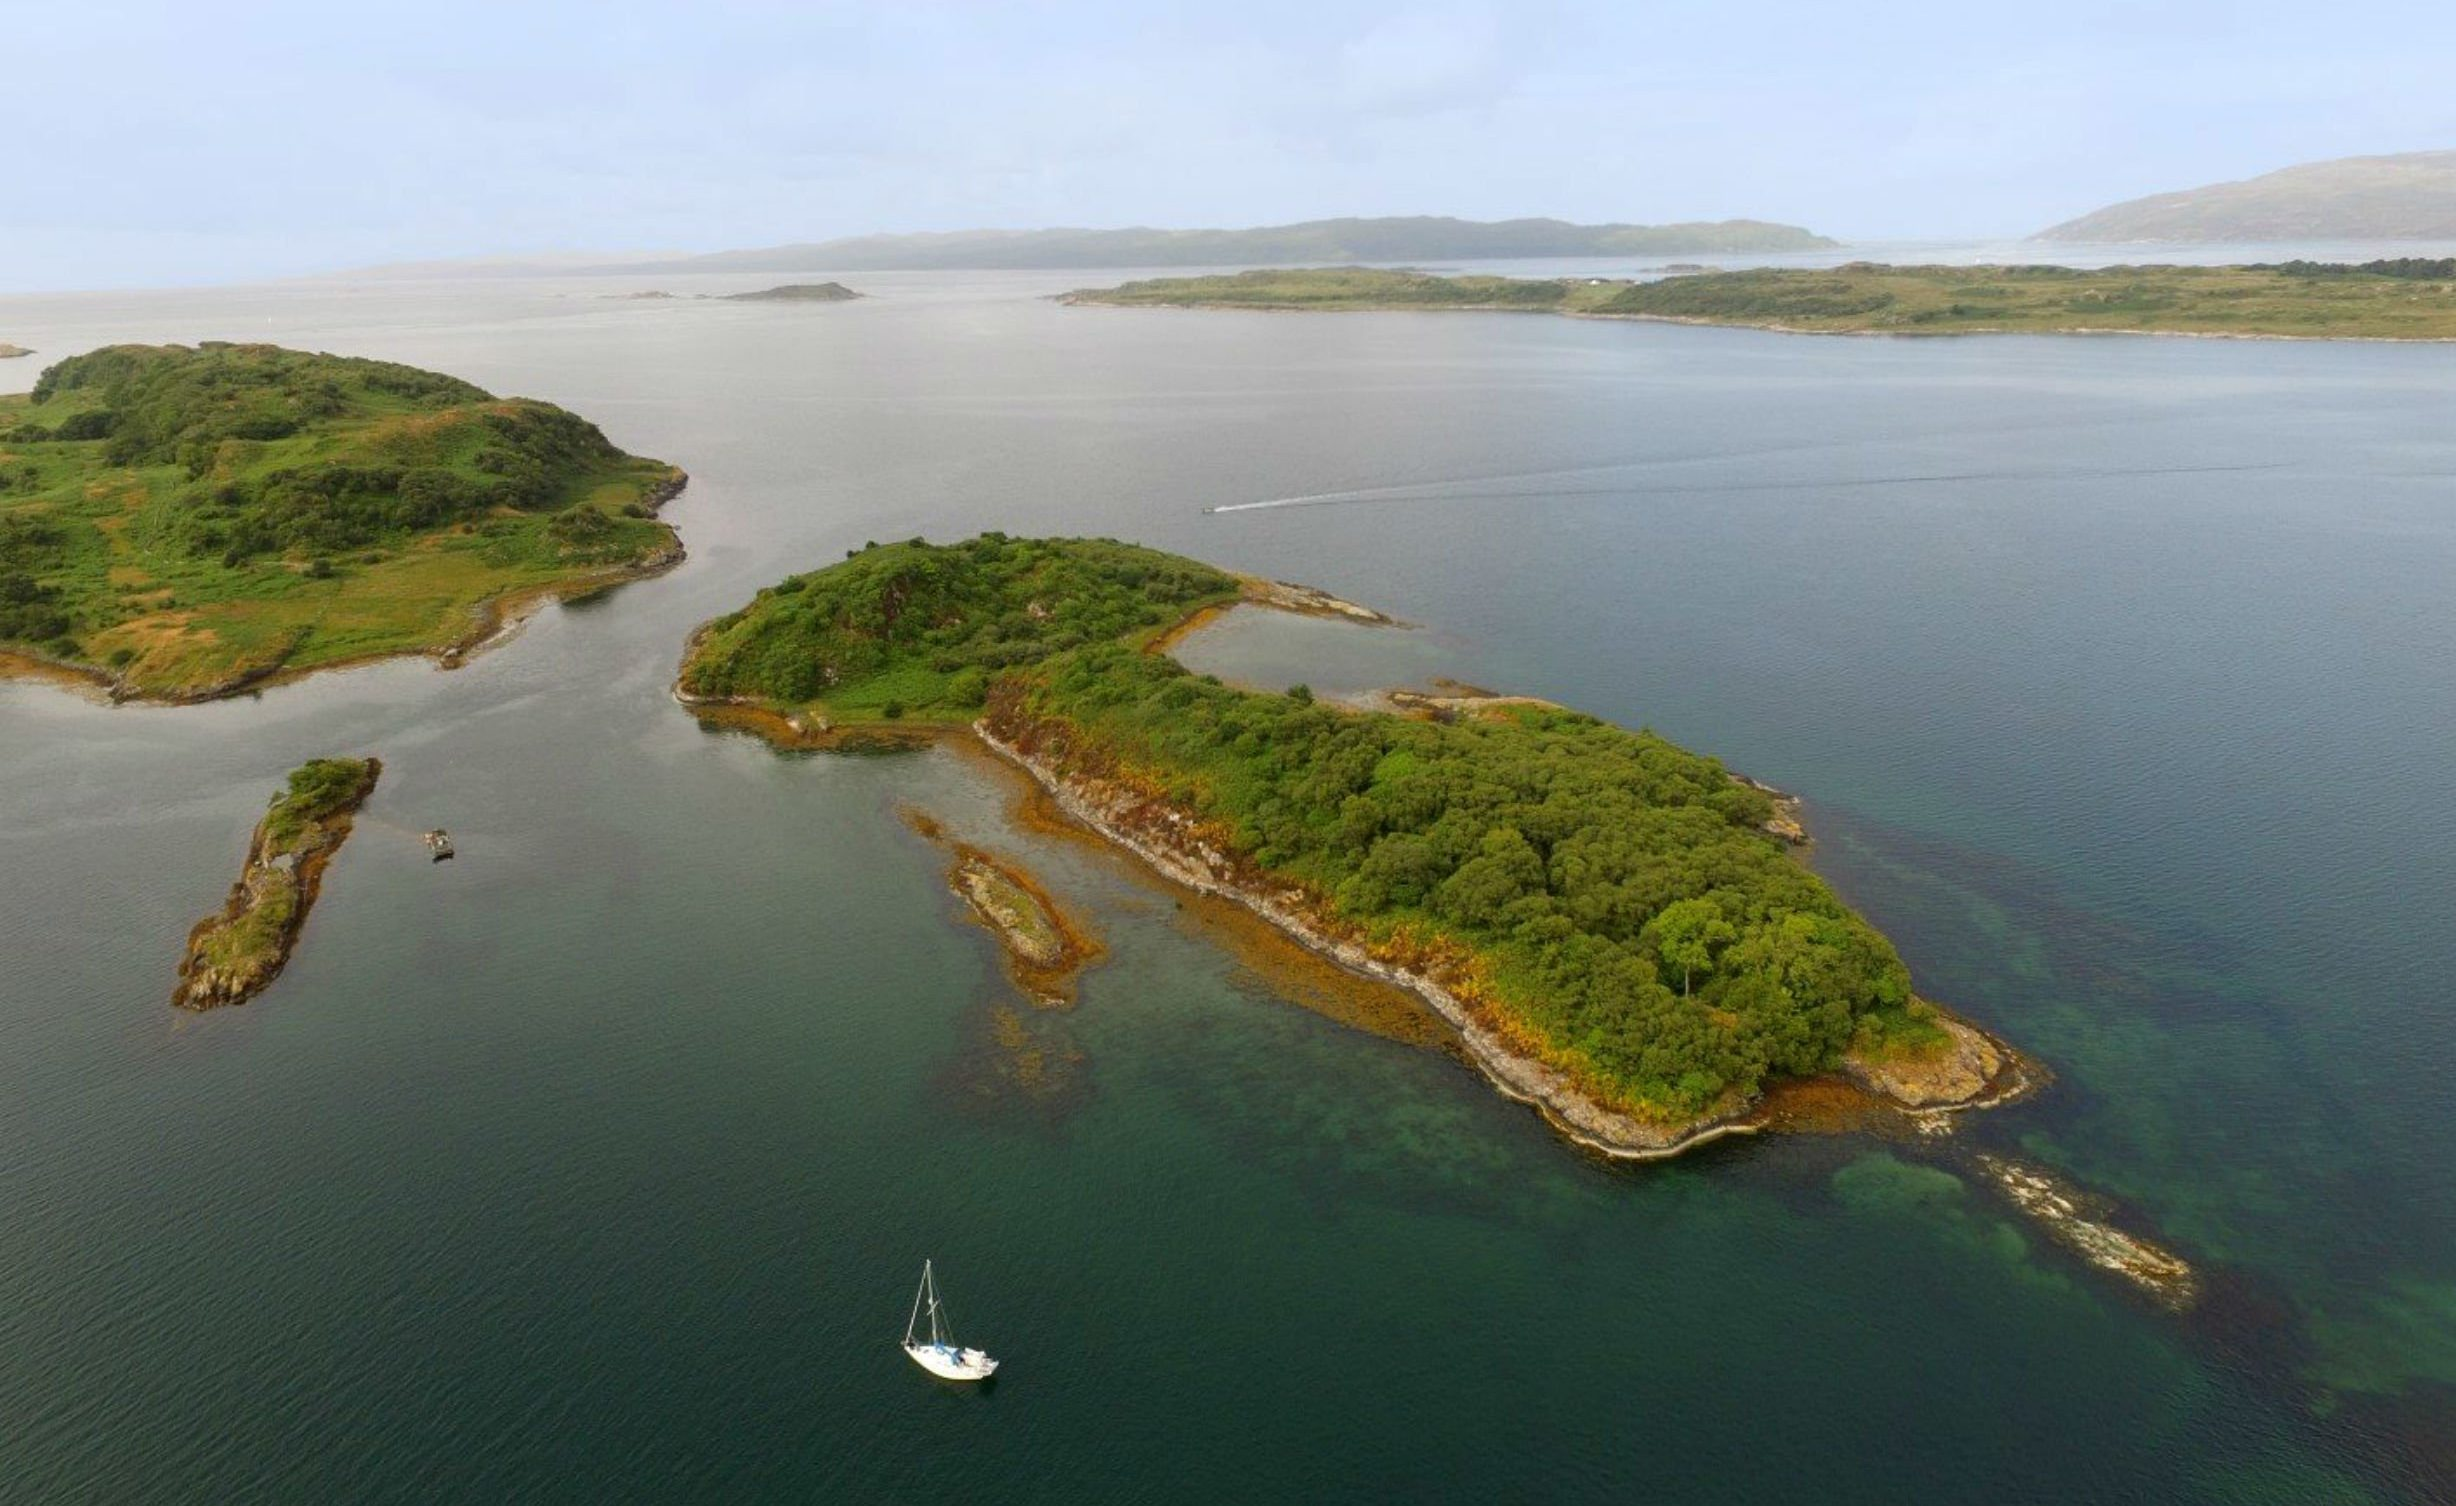 """AN untouched Scottish island whose only nod to the 21st Century is a """"Vodafone signal in some parts"""" is one sale for just ?120,000. And possible buyers of Eilean Nan Gabhar, the Island of the Goats, can forget the convenience of open Sunday afternoon viewings. Prospective purchasers have been warned they must organise their own transport to the island """"at their own risk"""". The island, about 30 miles south of Oban on Scotland's rugged and dramatically beautiful west coast, is the size of about nine football pitches. The island features a secluded bay where boats can be safely anchored, a pebbly beach, abundant flora, ancient woodland and fishing. But the island is otherwise completely without modern services such as water and electricity, and has no buildings. The island, 440m long and 180m wide, has belonged to the same family for over 70 years. Sellers Galbraith describe the sanctuary as a ?superb example of natural island beauty at its best?."""